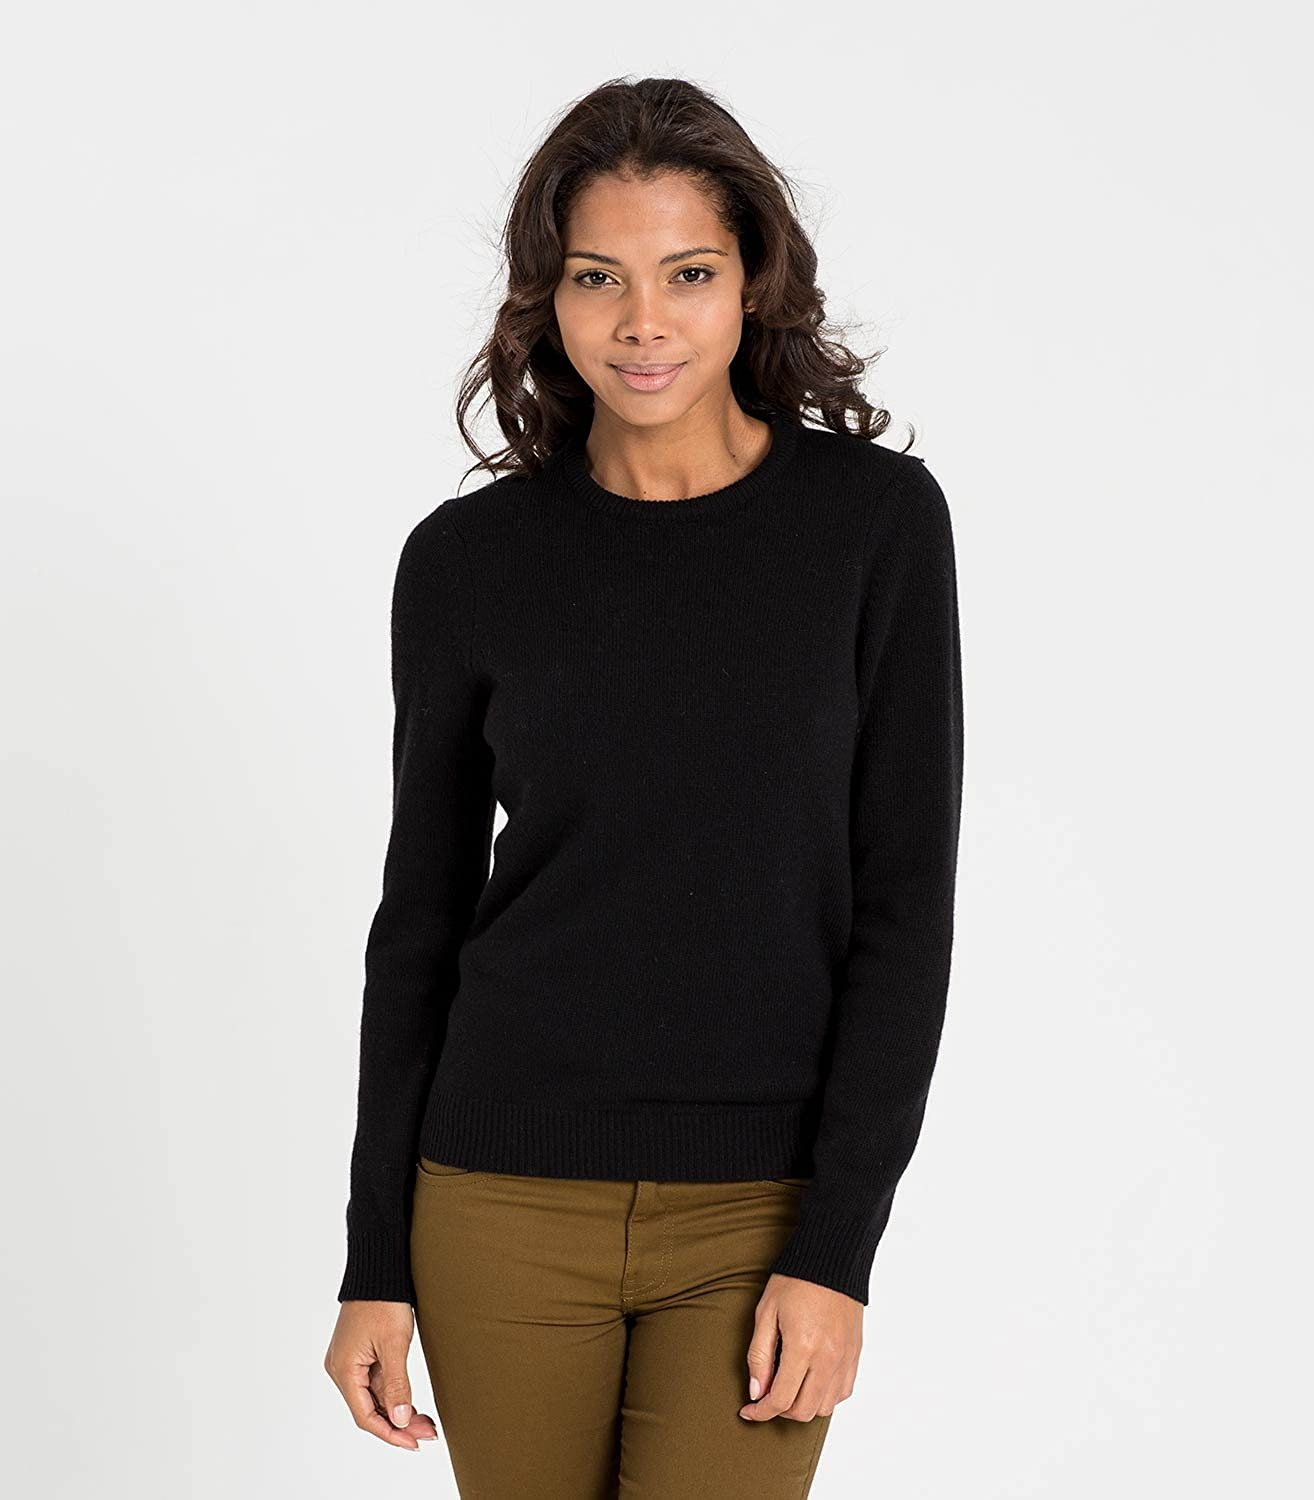 Woolovers Womens Lambswool Crew Neck Jumper  Amazon.co.uk  Clothing 23ee0af92